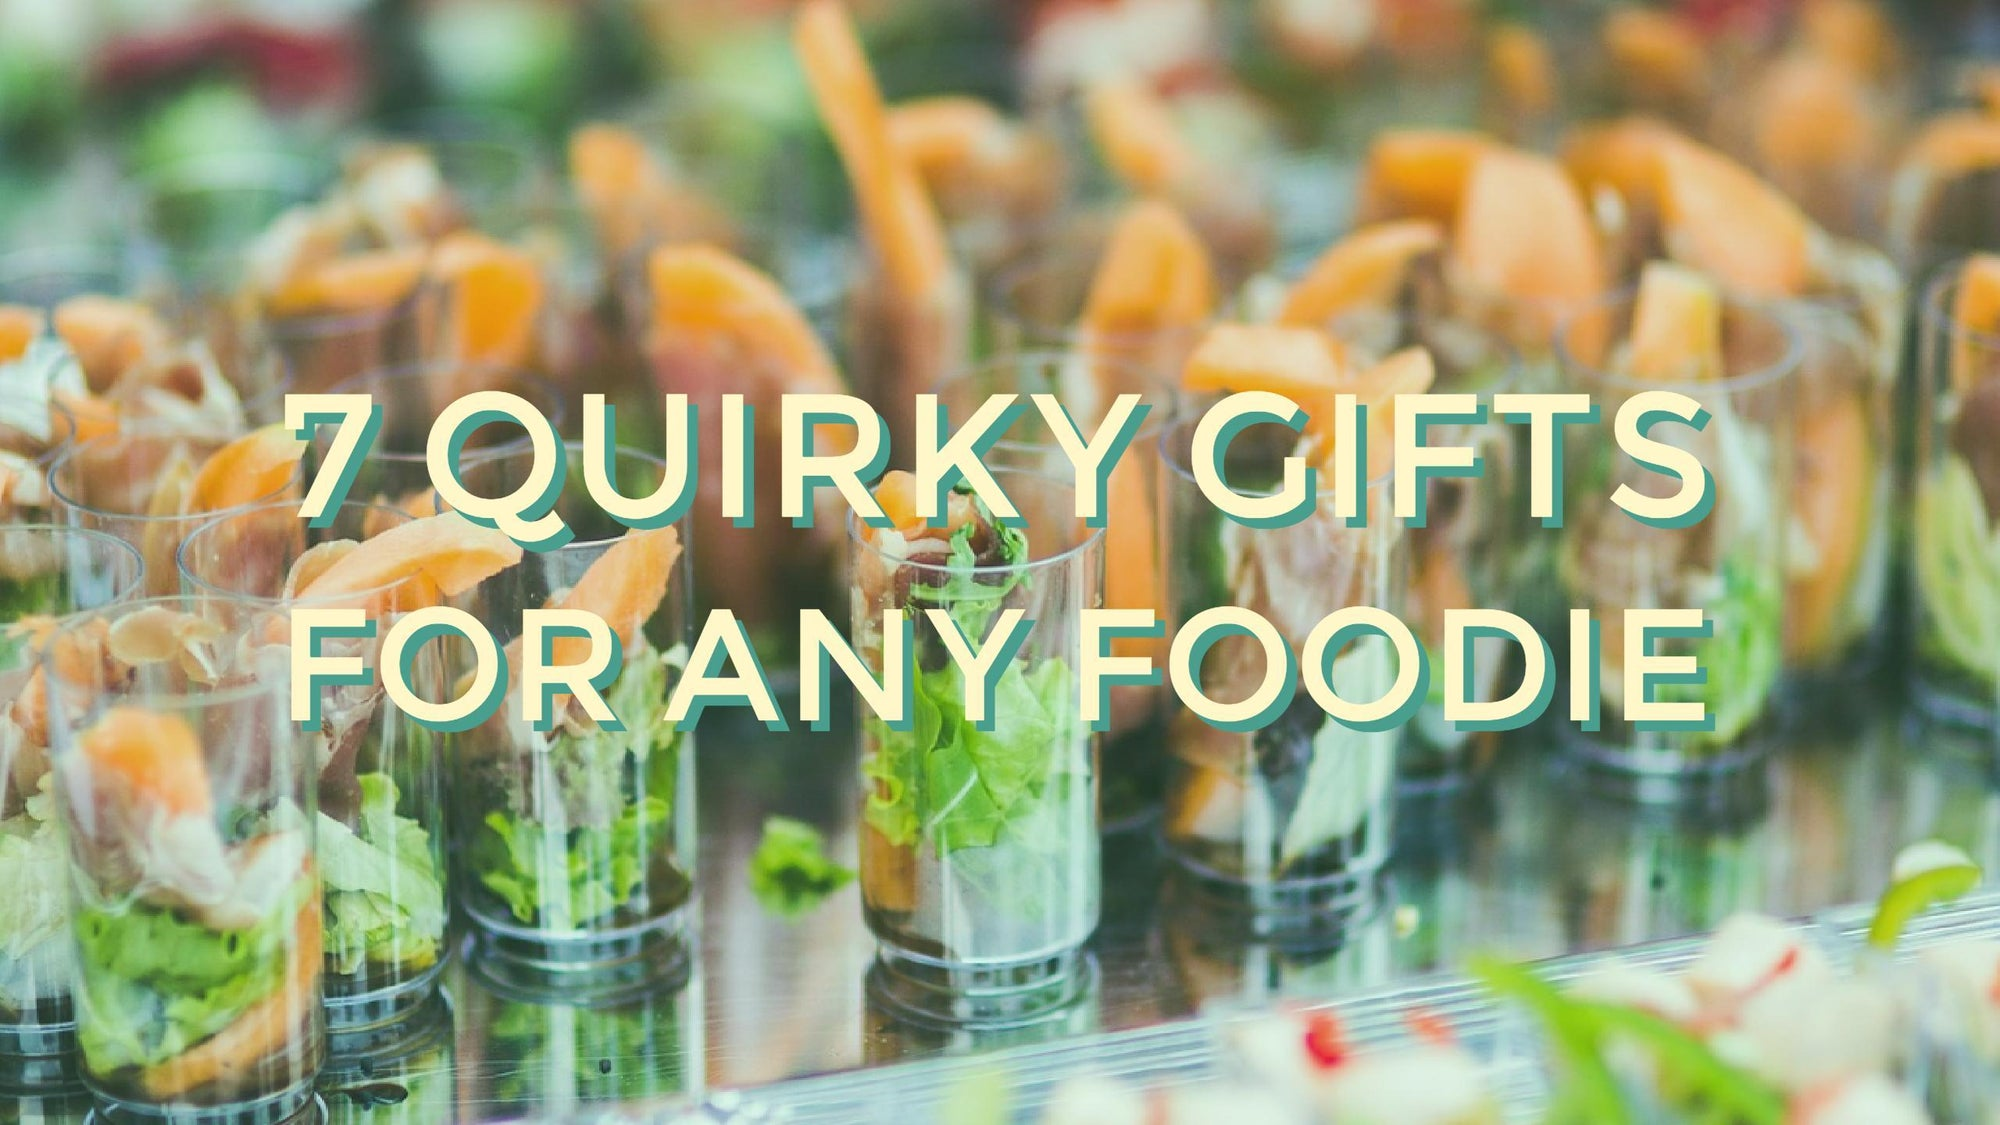 7 Quirky Gifts for Any Foodie